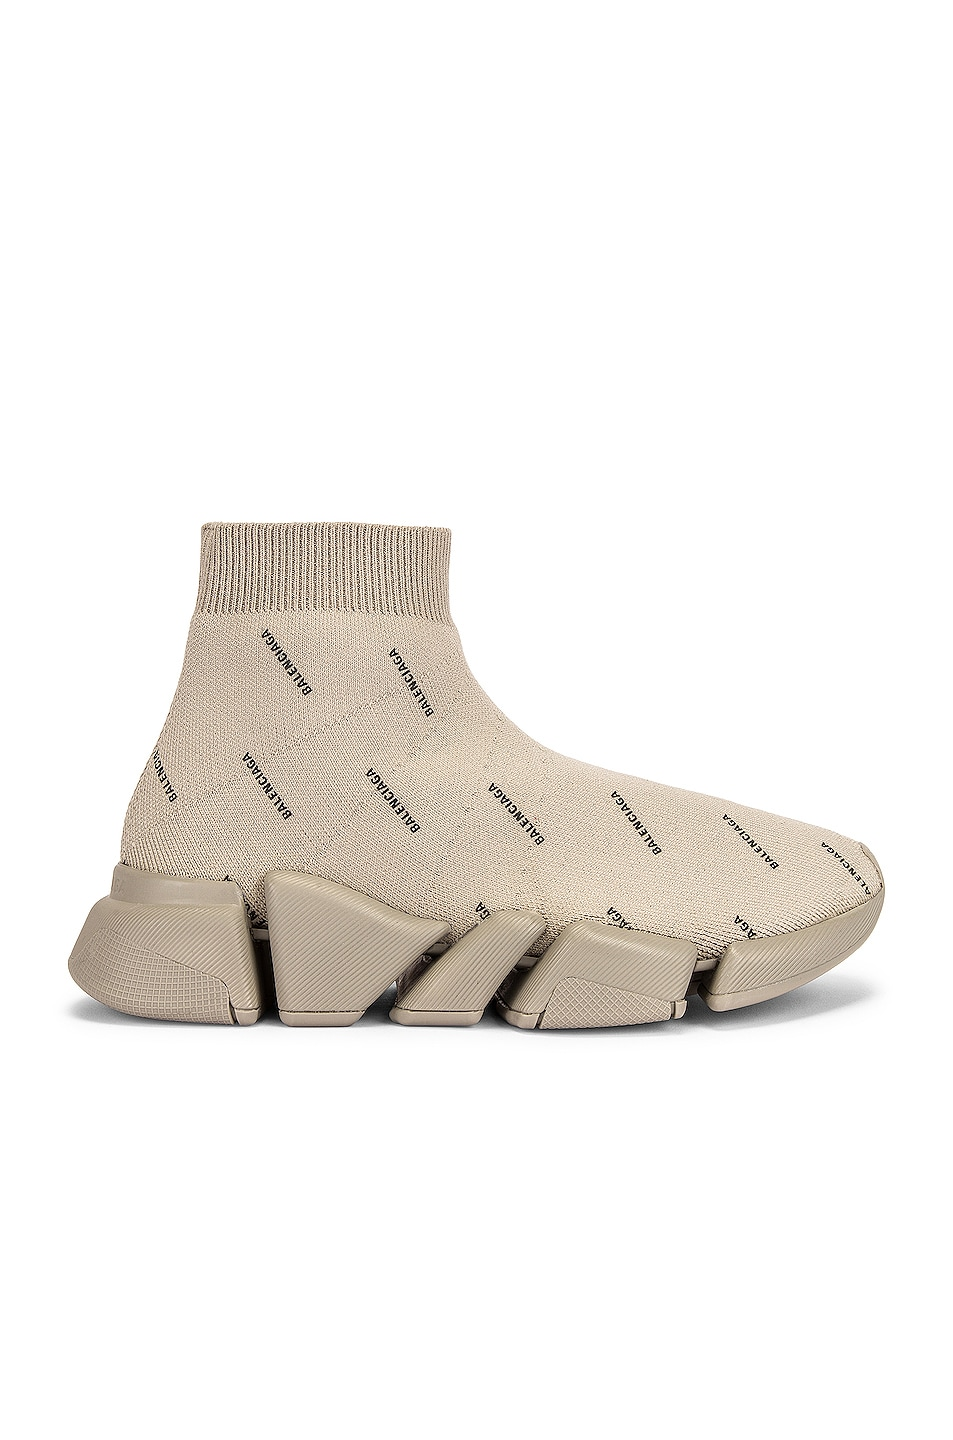 Image 1 of Balenciaga Speed 2.0 Lt Sneakers in Sand & Black